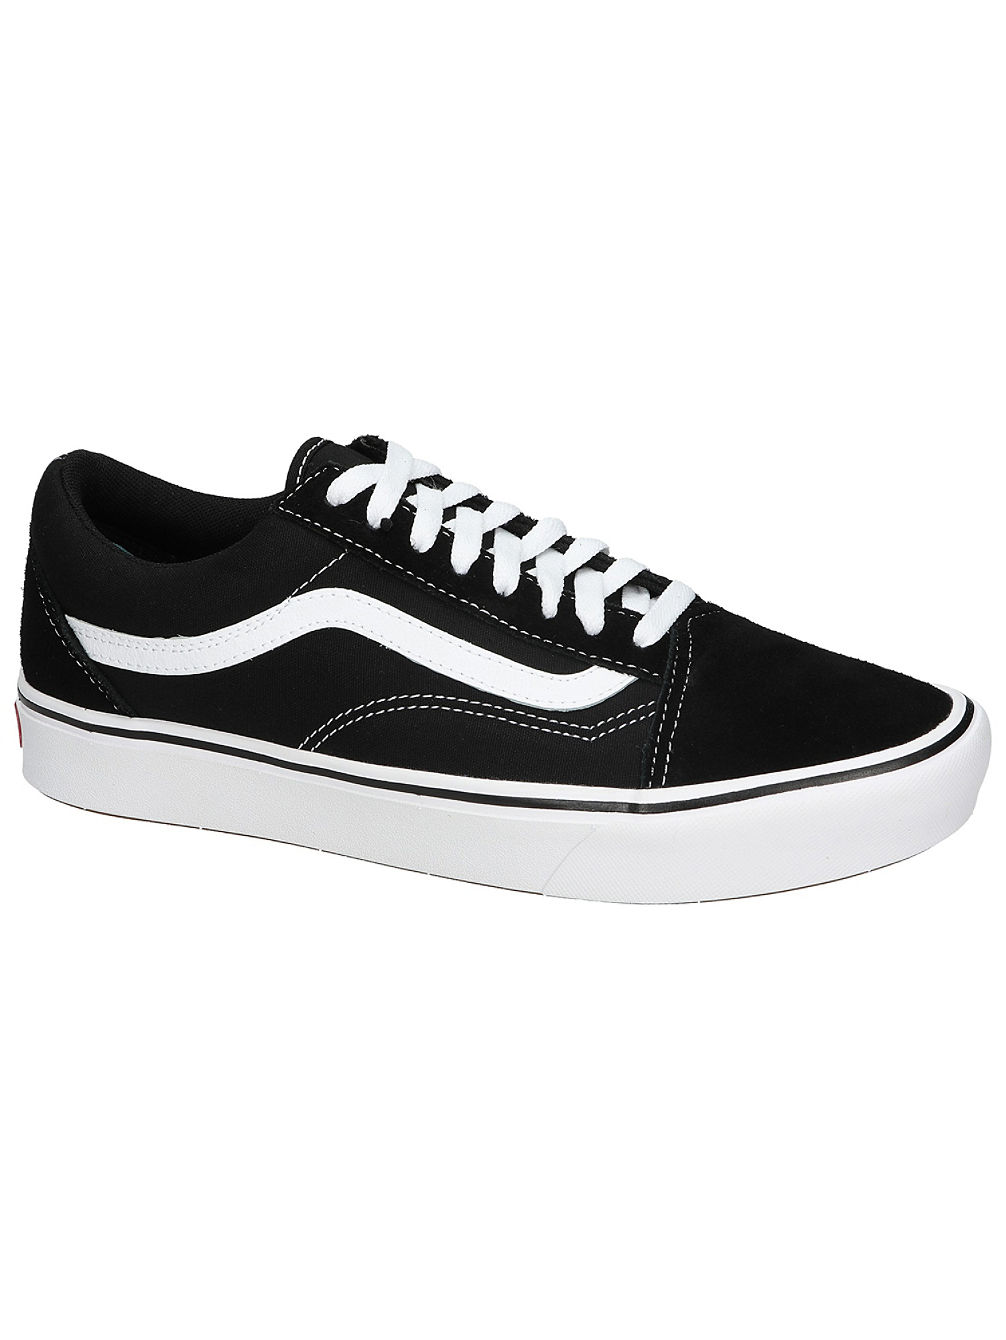 Classic ComfyCush Old Skool Sneakers